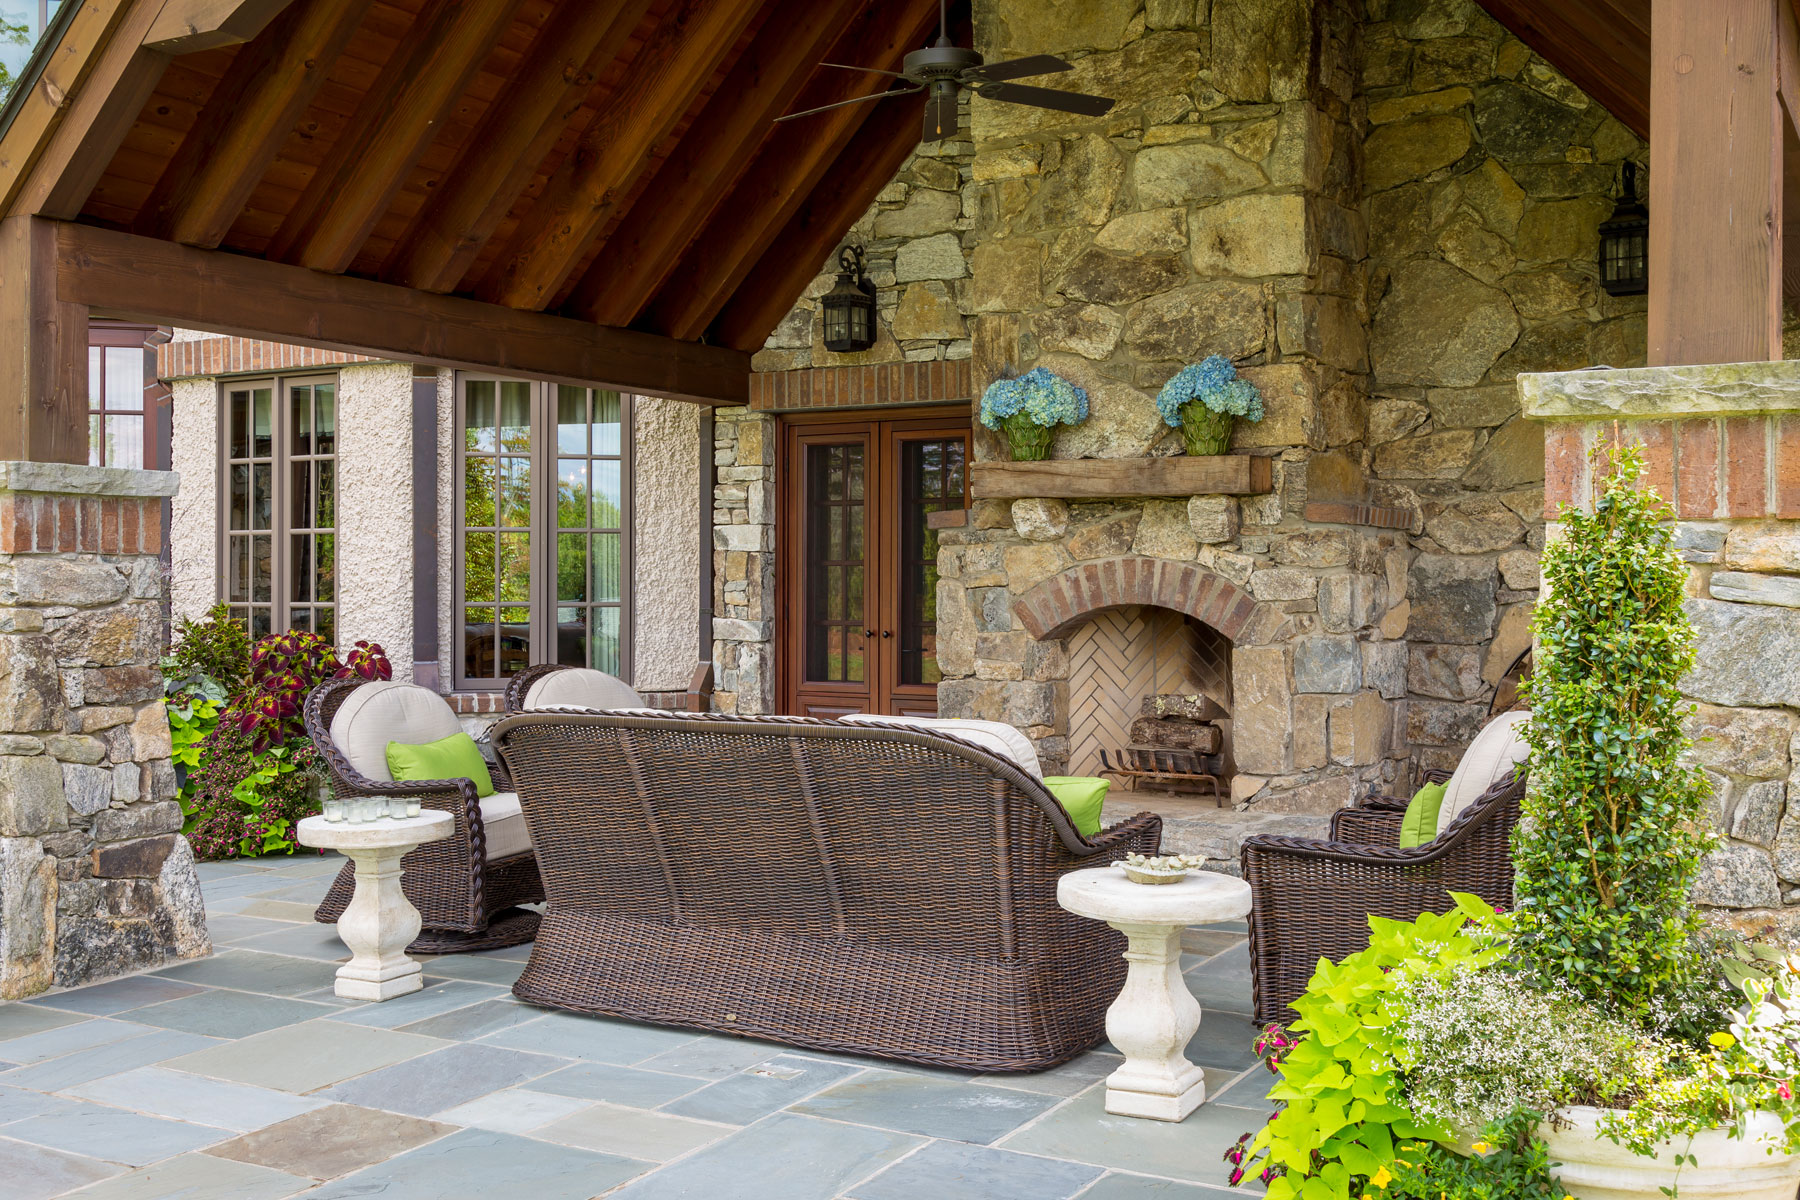 Outdoor room with fireplace and seating area on vaulted ceiling